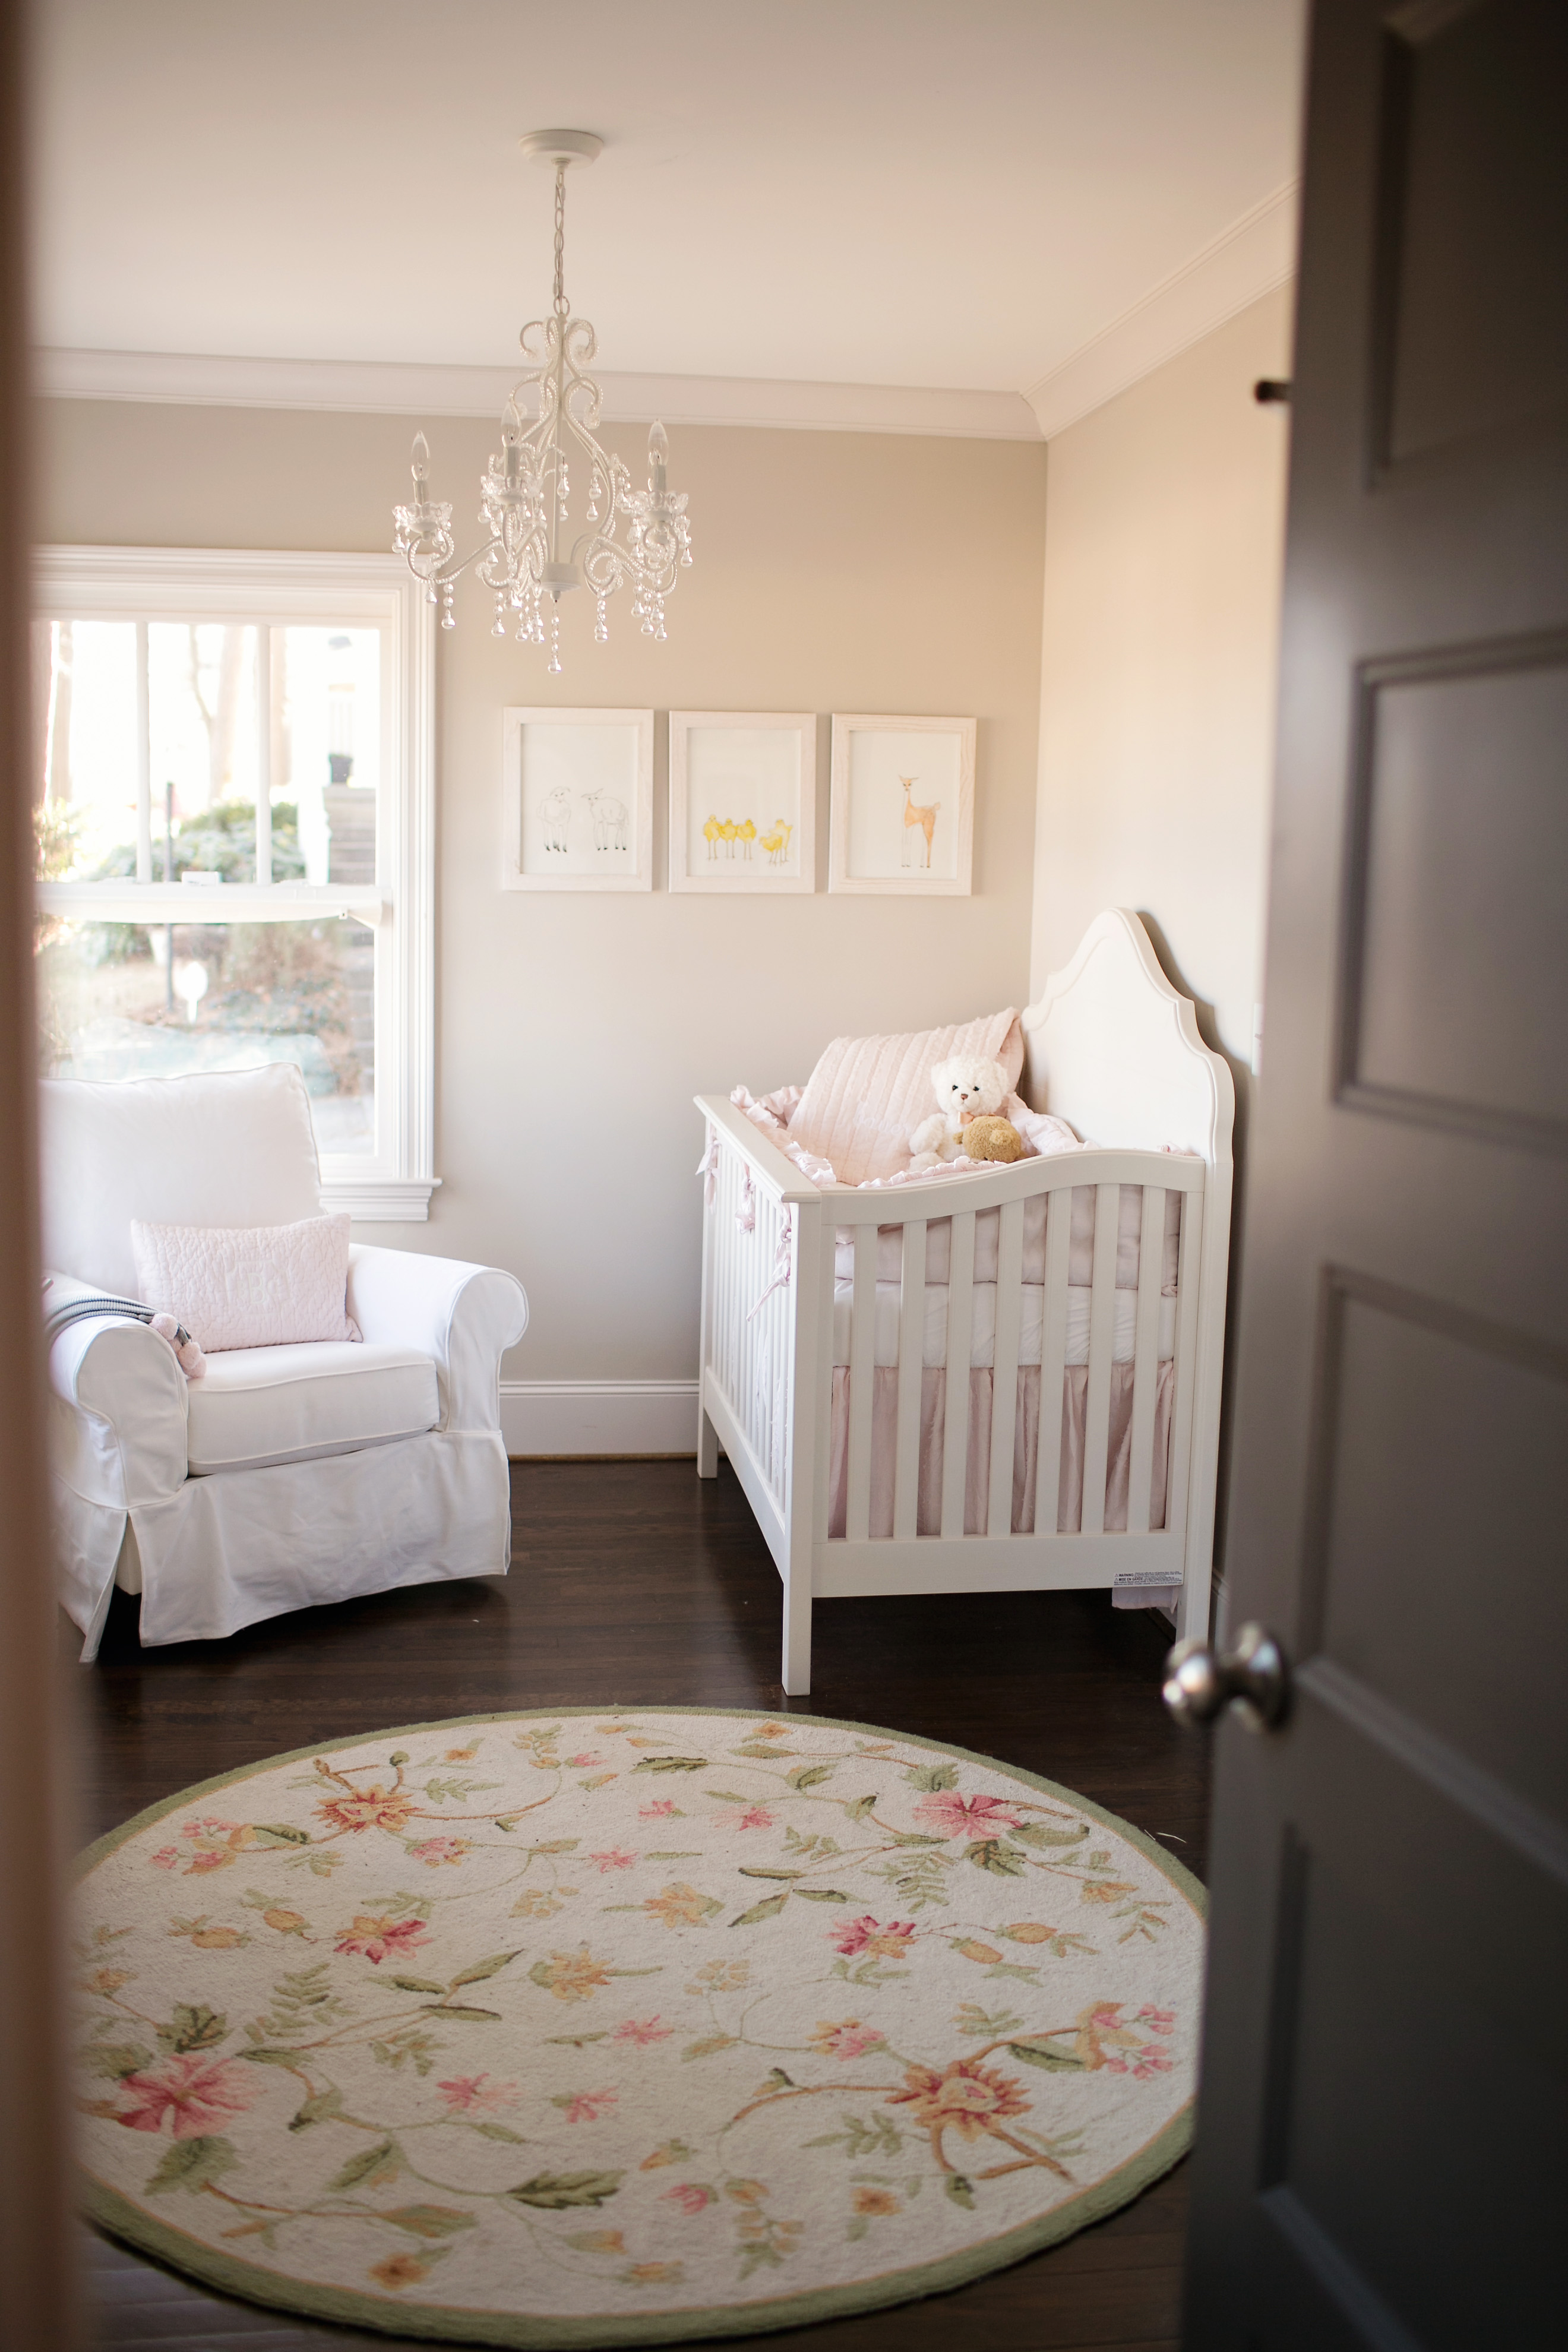 Pale Pink Wallpaper For Girl Nursery Designing For A Brand New Baby In A Brand New Space